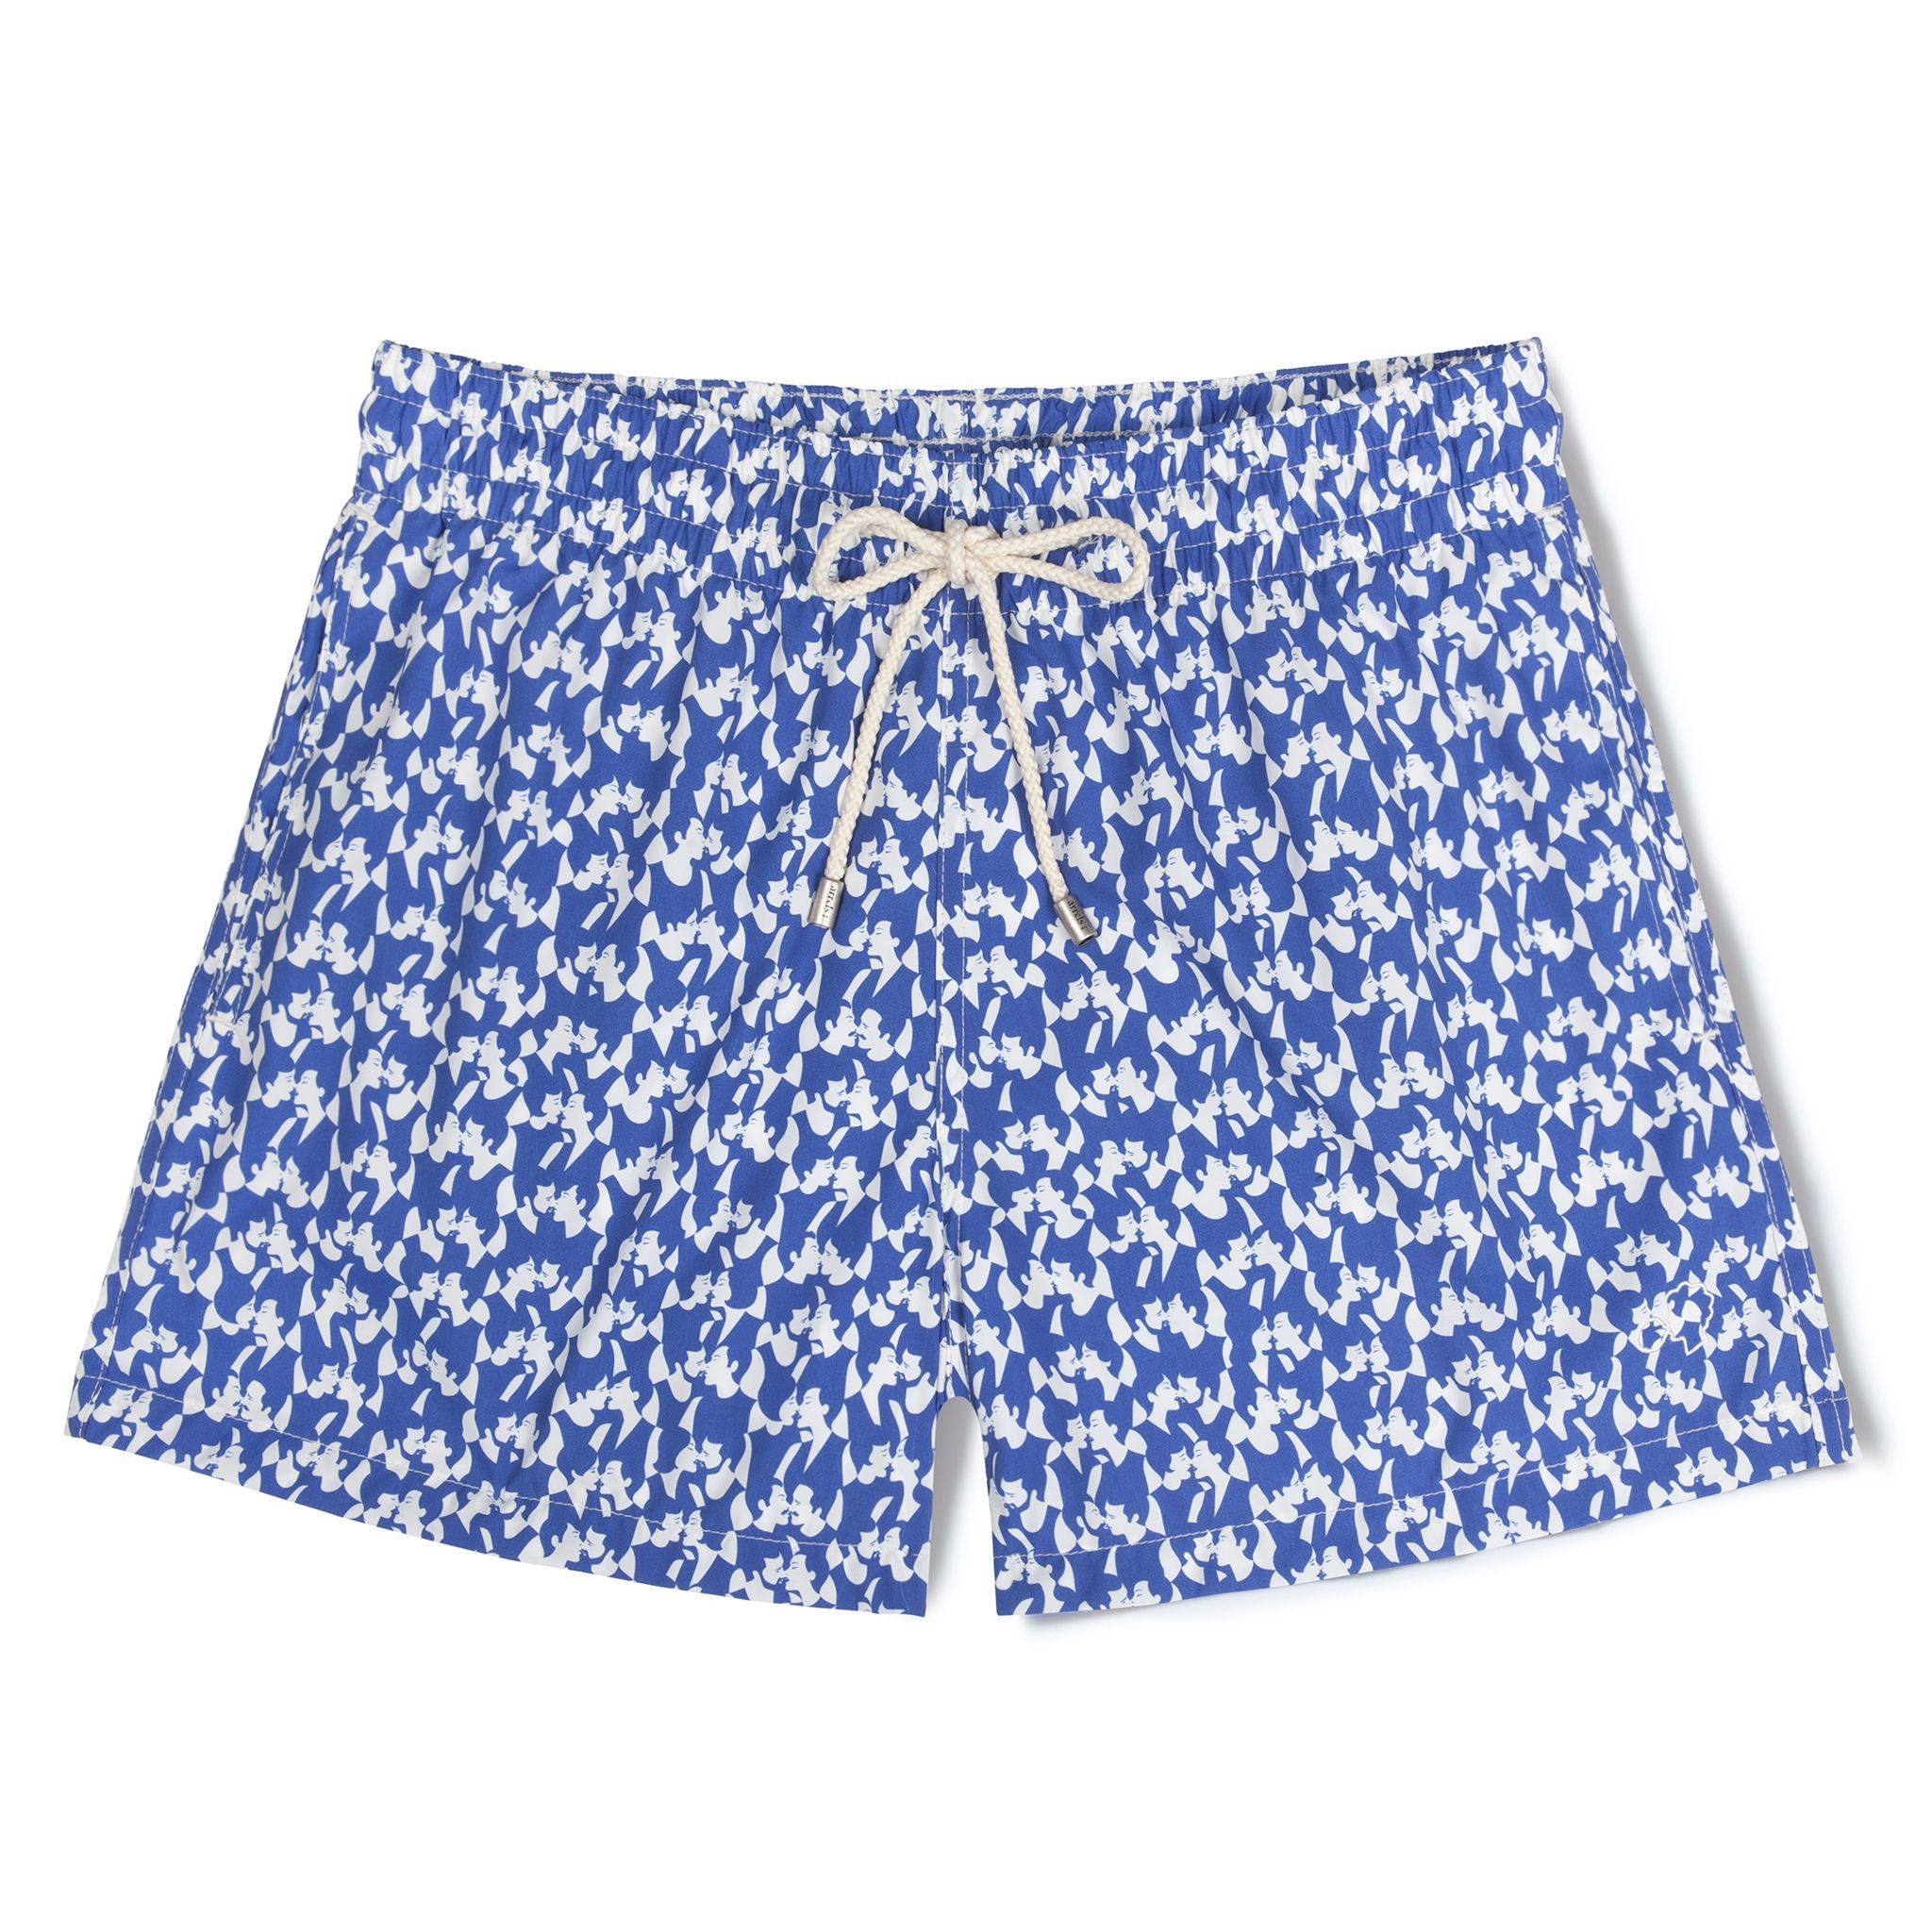 Short-Length Swim Shorts Blue Love(s)